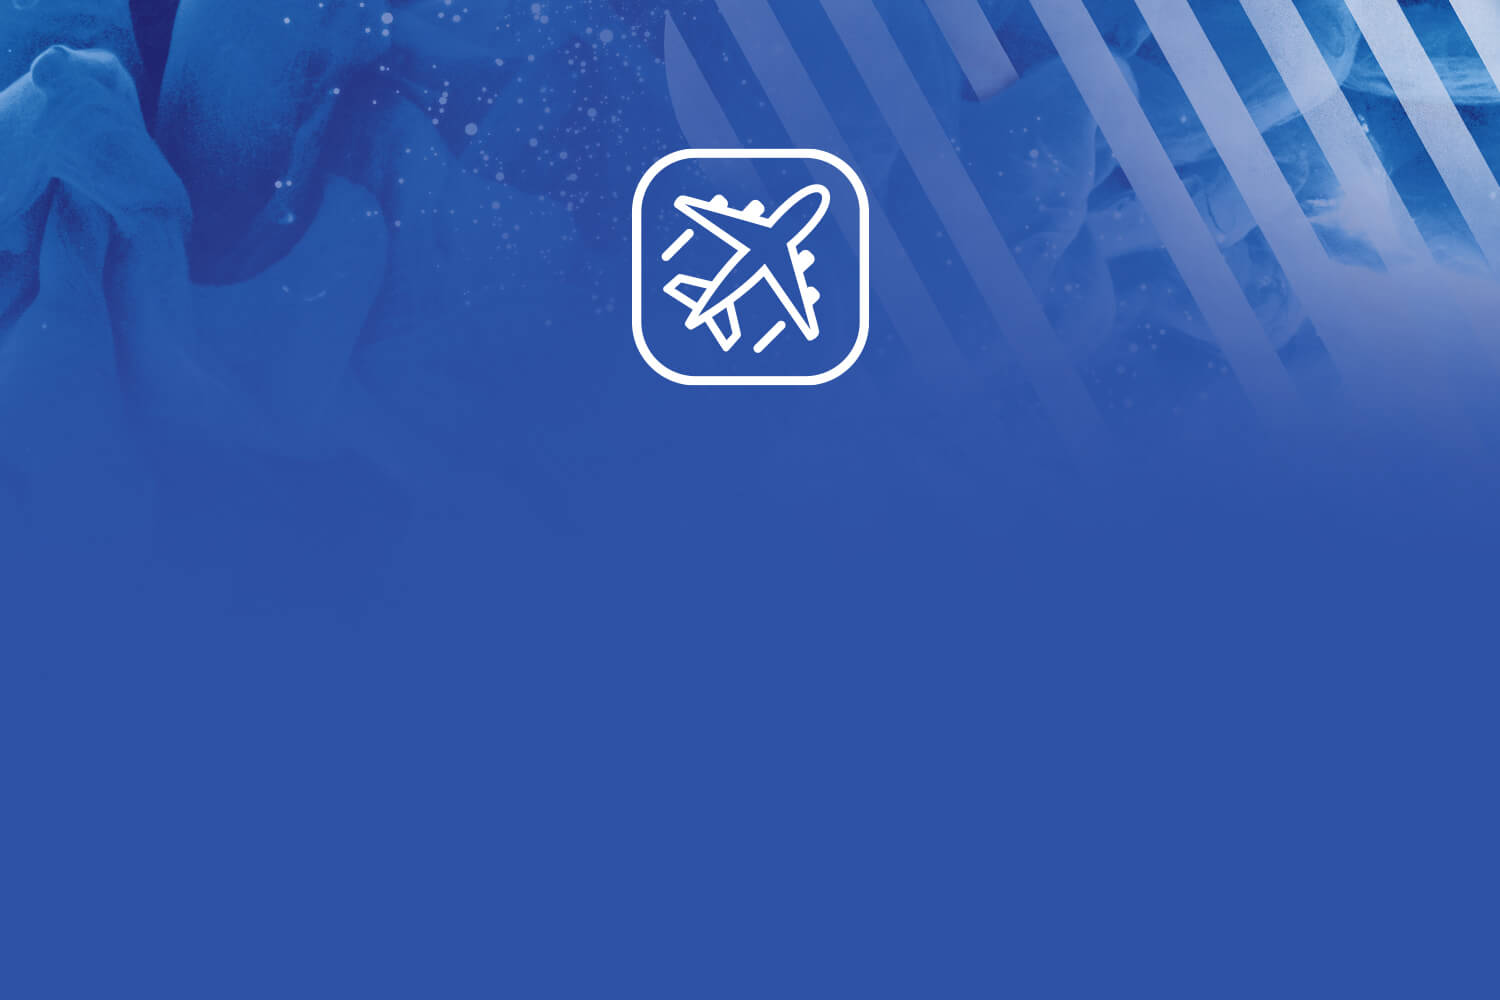 Blue ink with striped white squircle in background and an airplane icon indicating travel